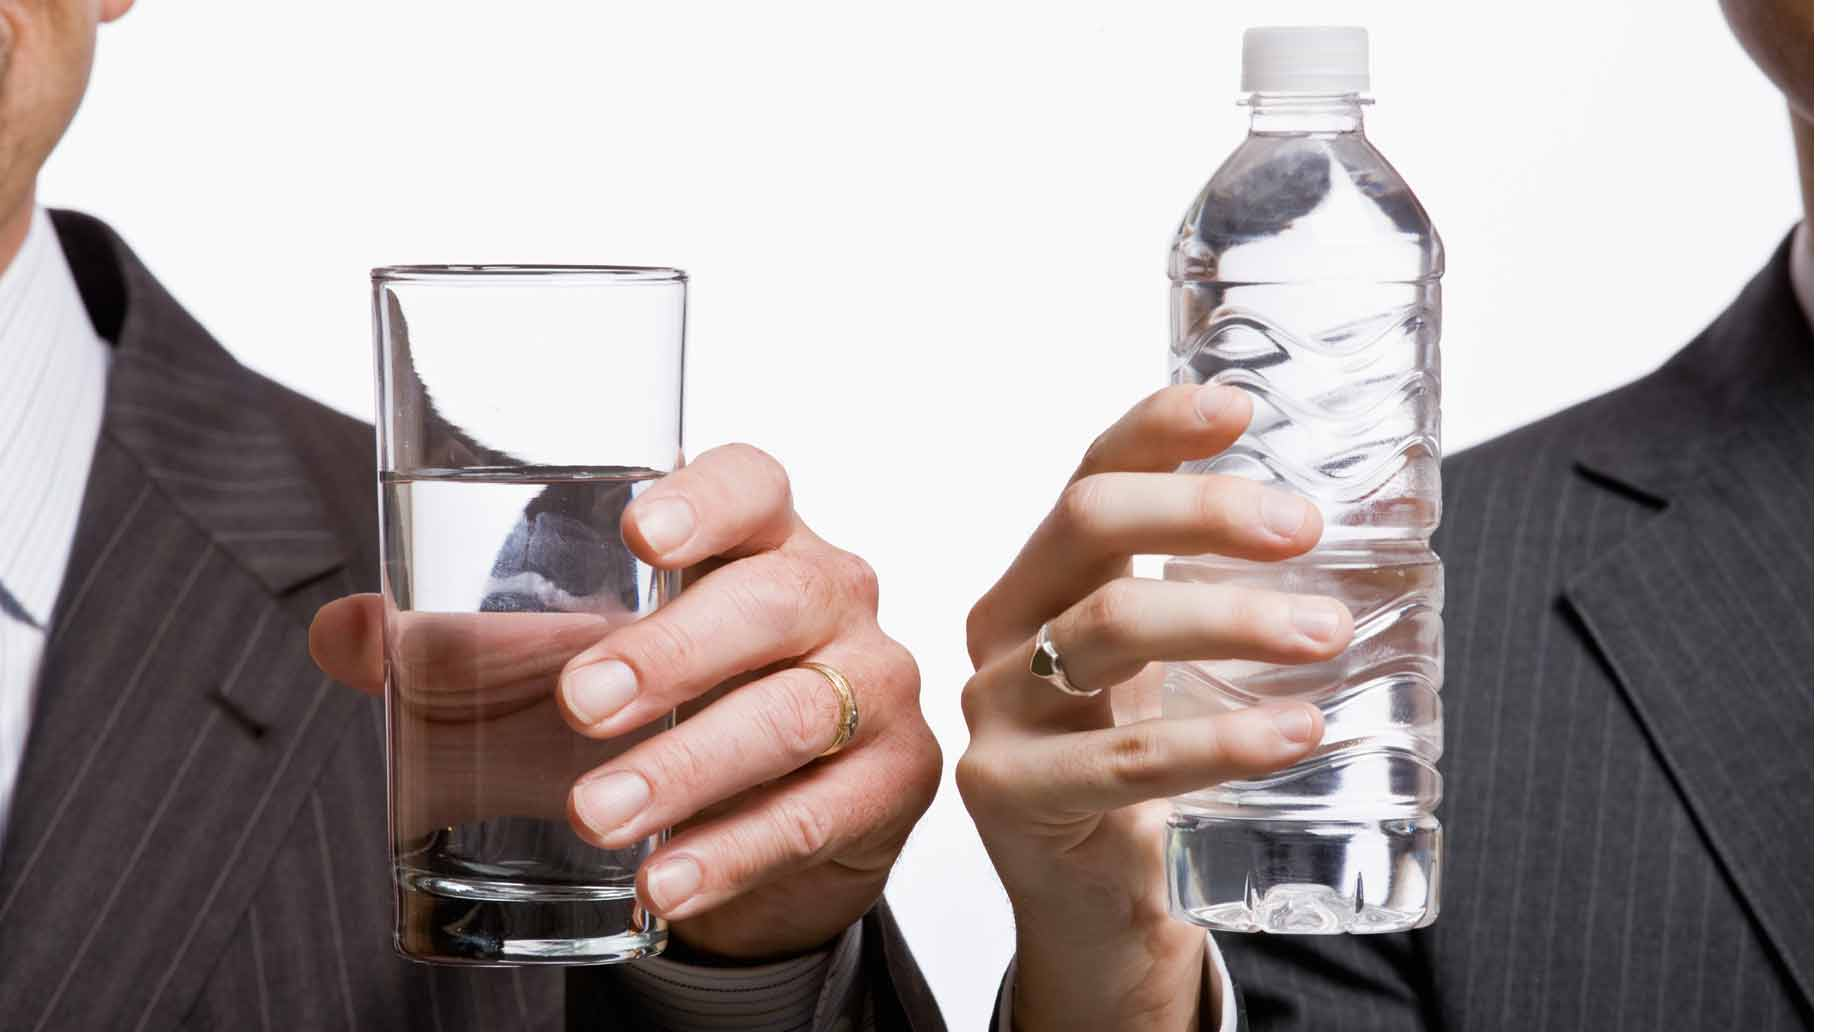 A hand holding a glass of water next to a hand holding a bottle of water